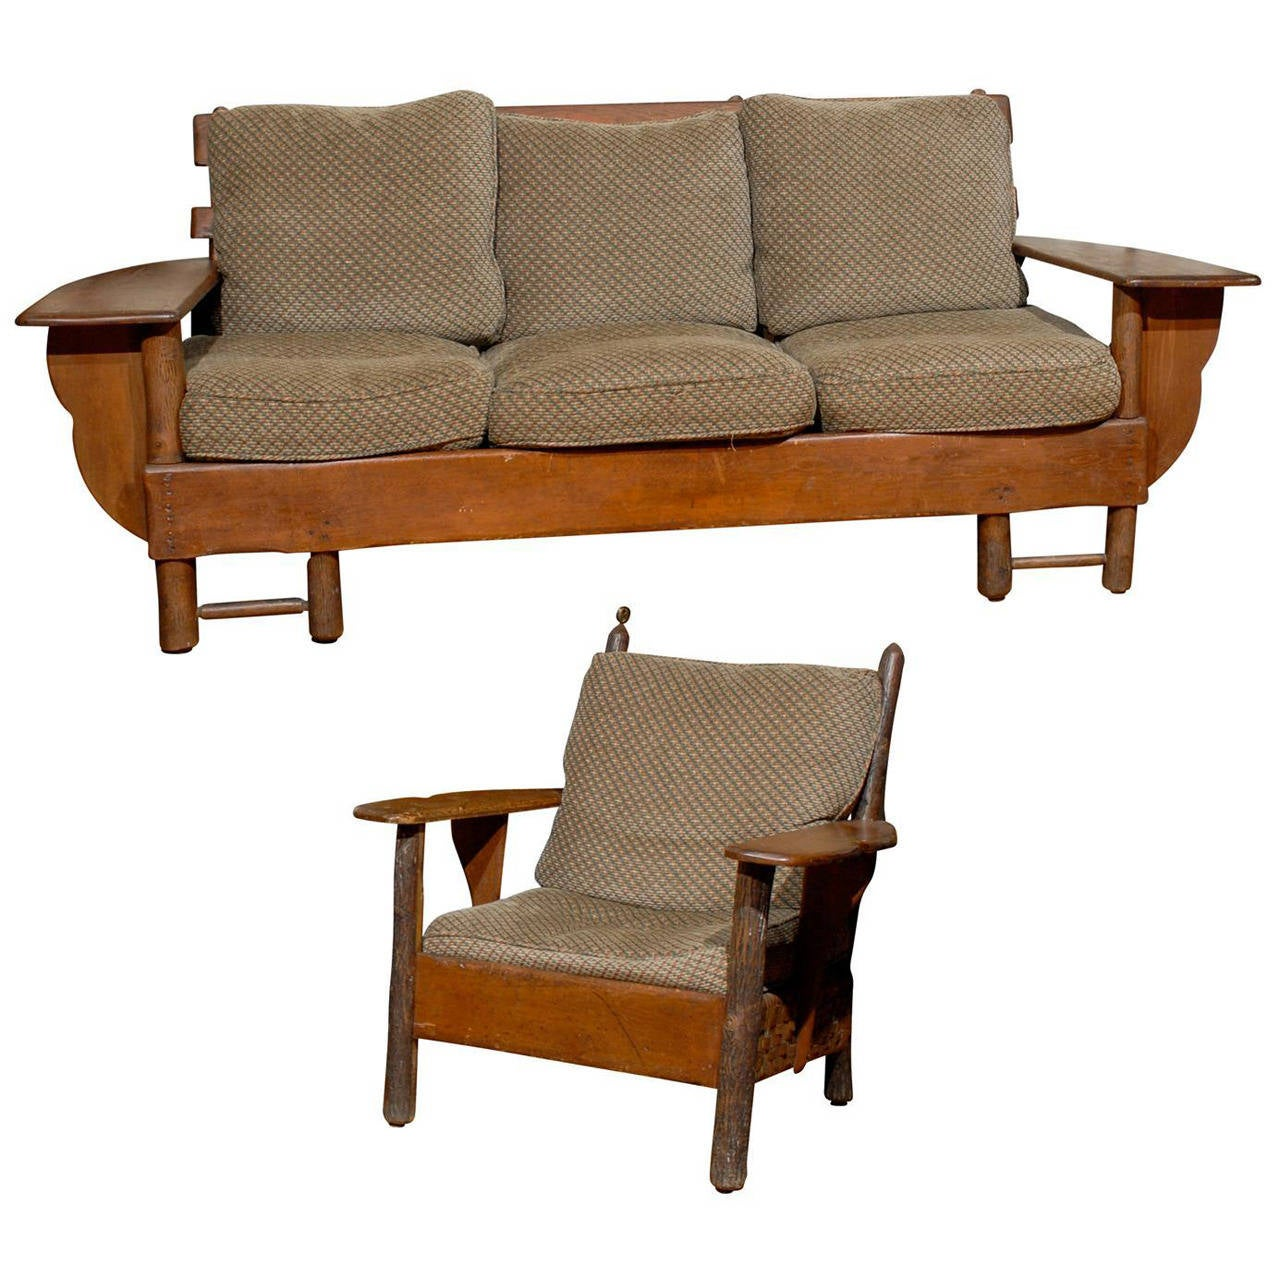 1920-1930 Old Hickory Sofa and Chair at 1stdibs